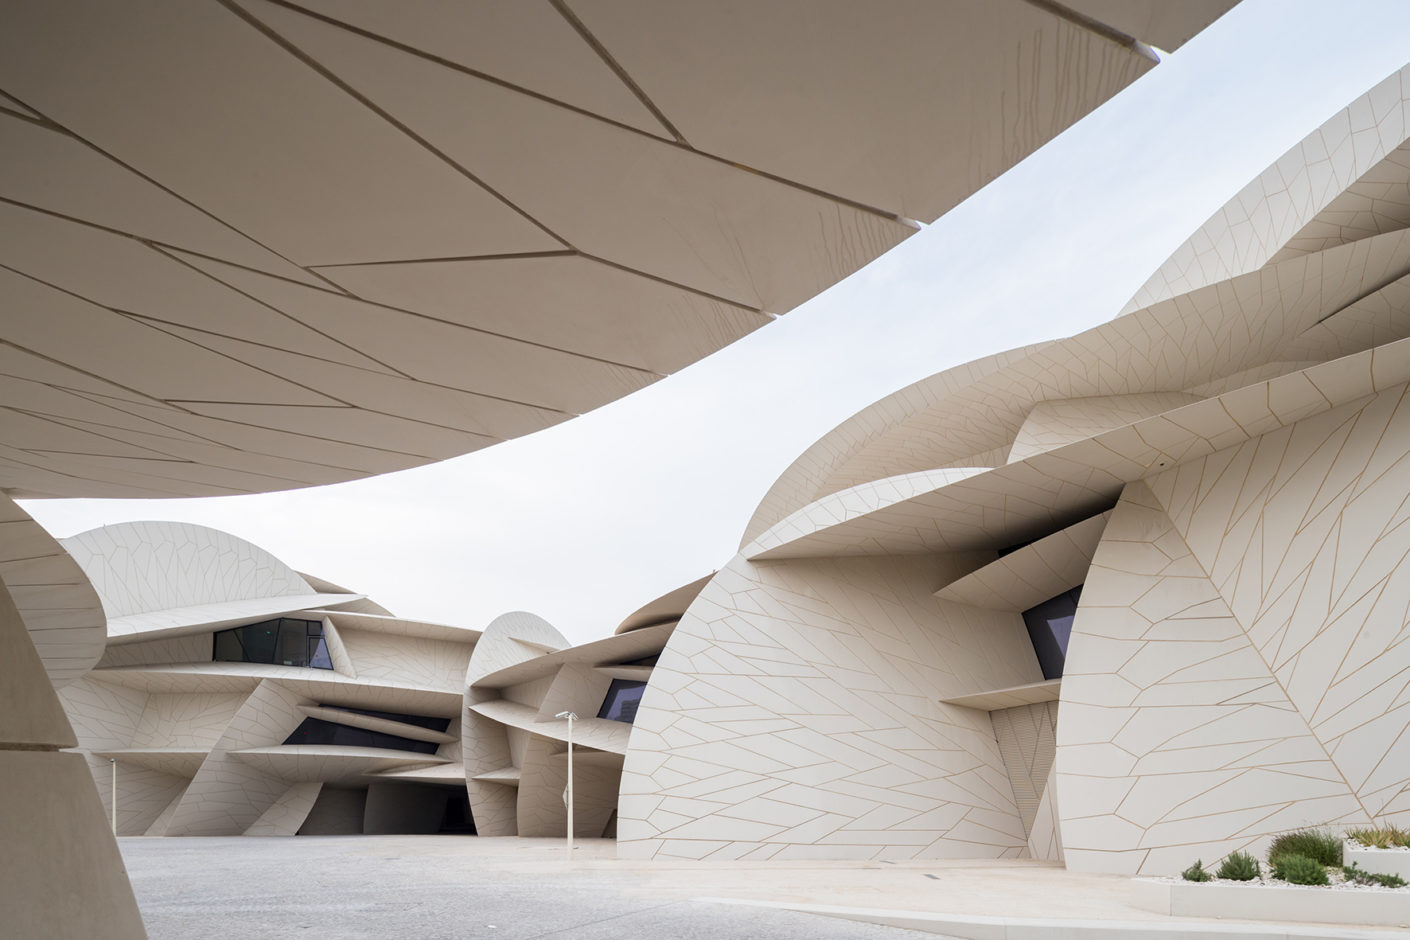 The architects used fibreglass-reinforced concrete for the striking pane shapes.